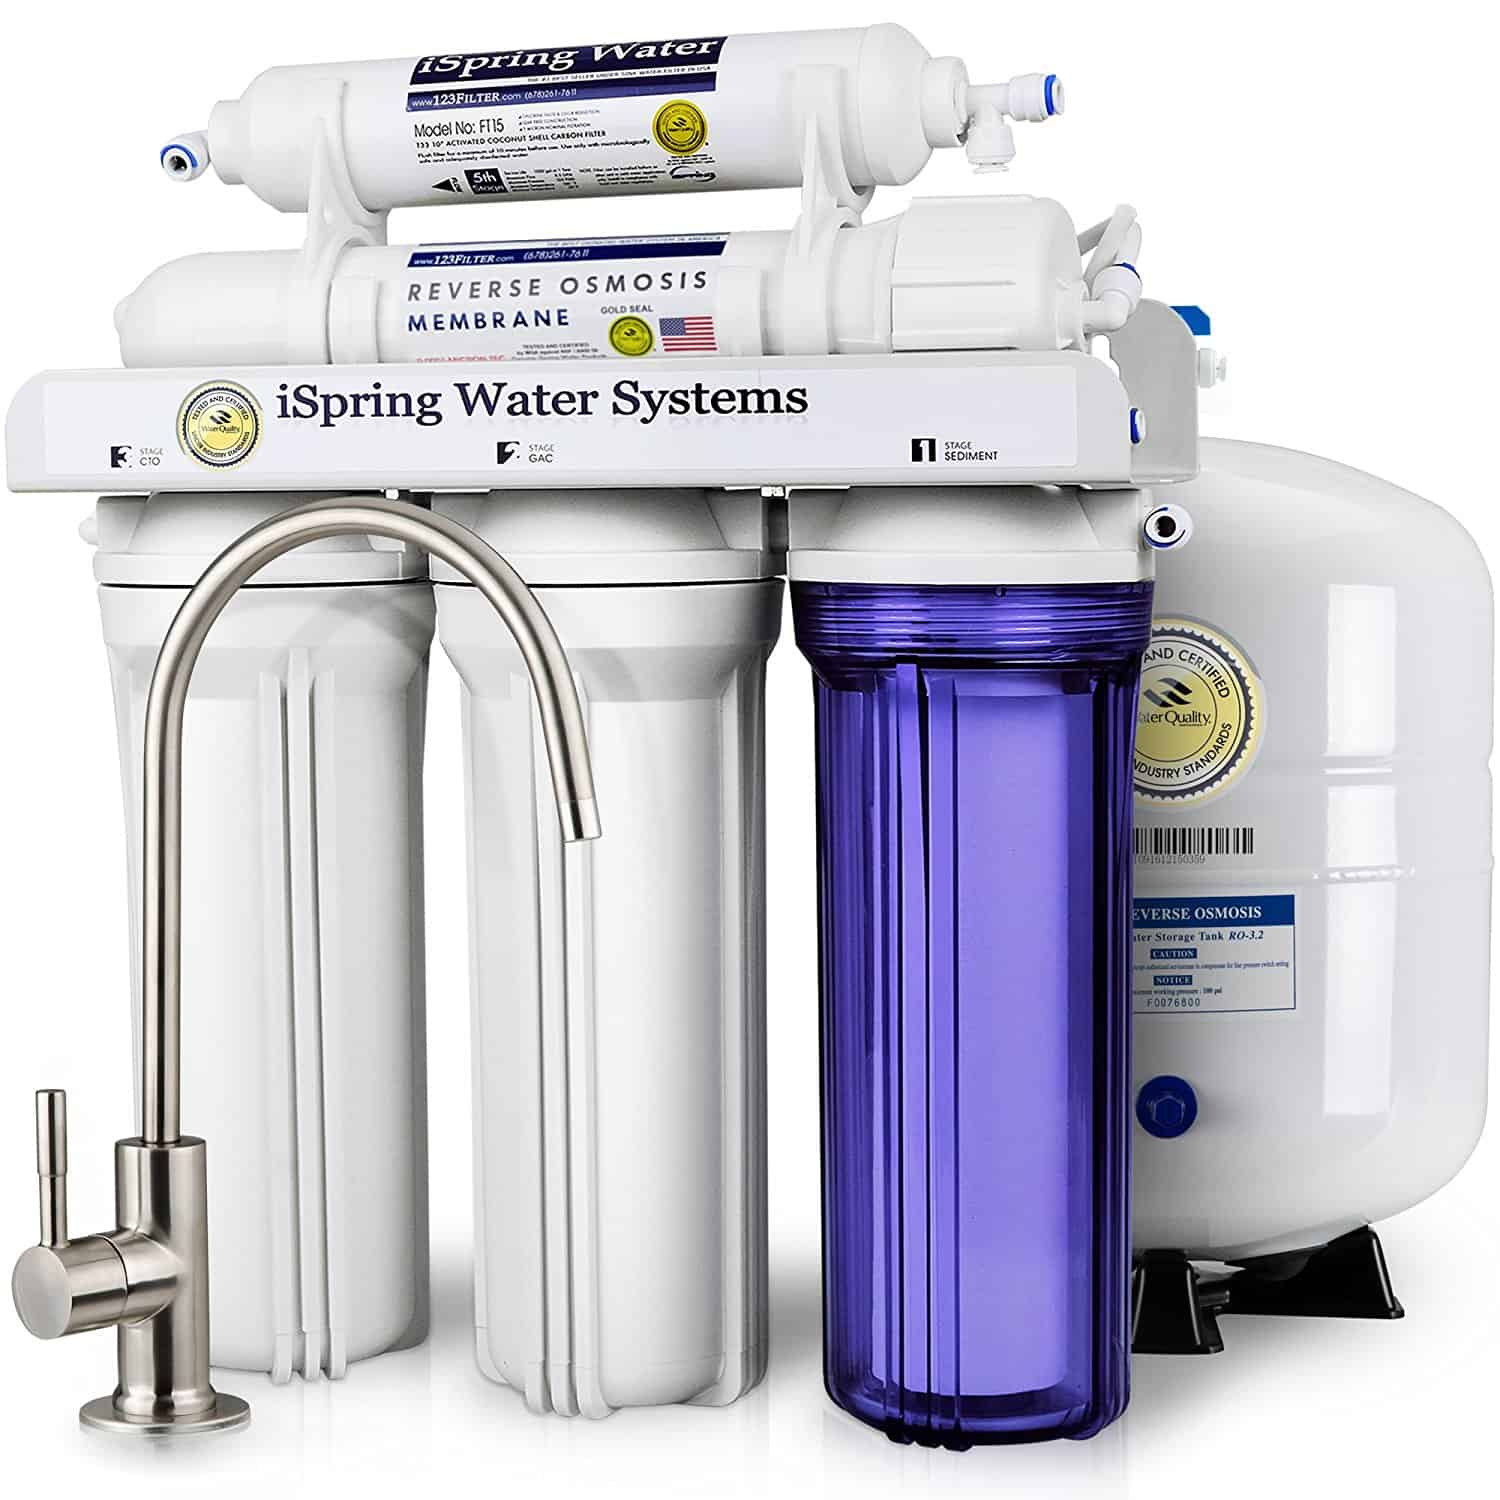 iSpring RCC7 High Capacity Under Sink 5-Stage Reverse Osmosis Drinking Water Filtration System and Ultimate Water Softener